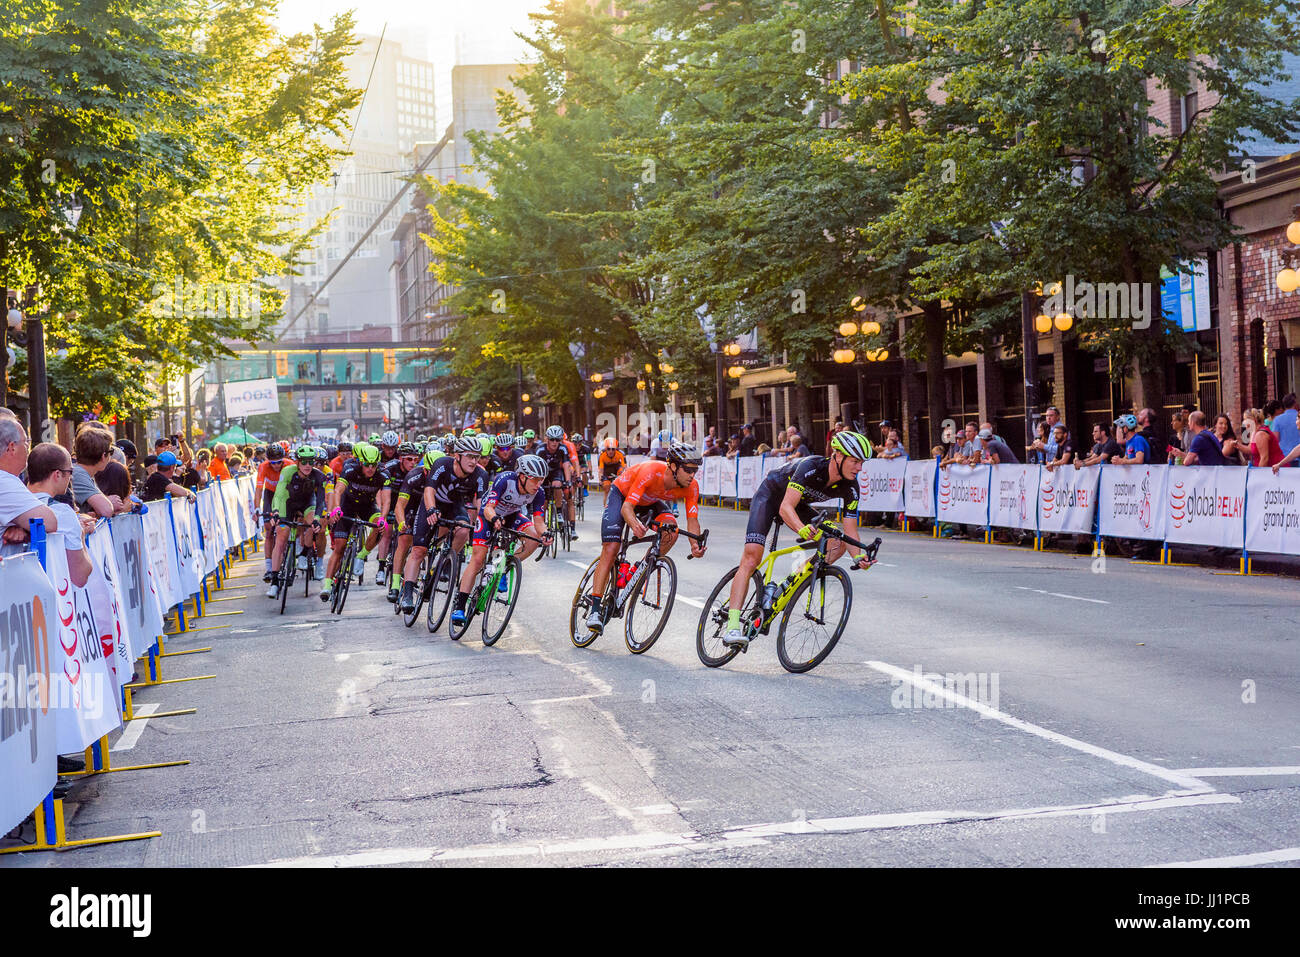 The Global Relay Gastown Grand Prix cycling race event. Gastown, Vancouver, British Columbia, Canada. - Stock Image